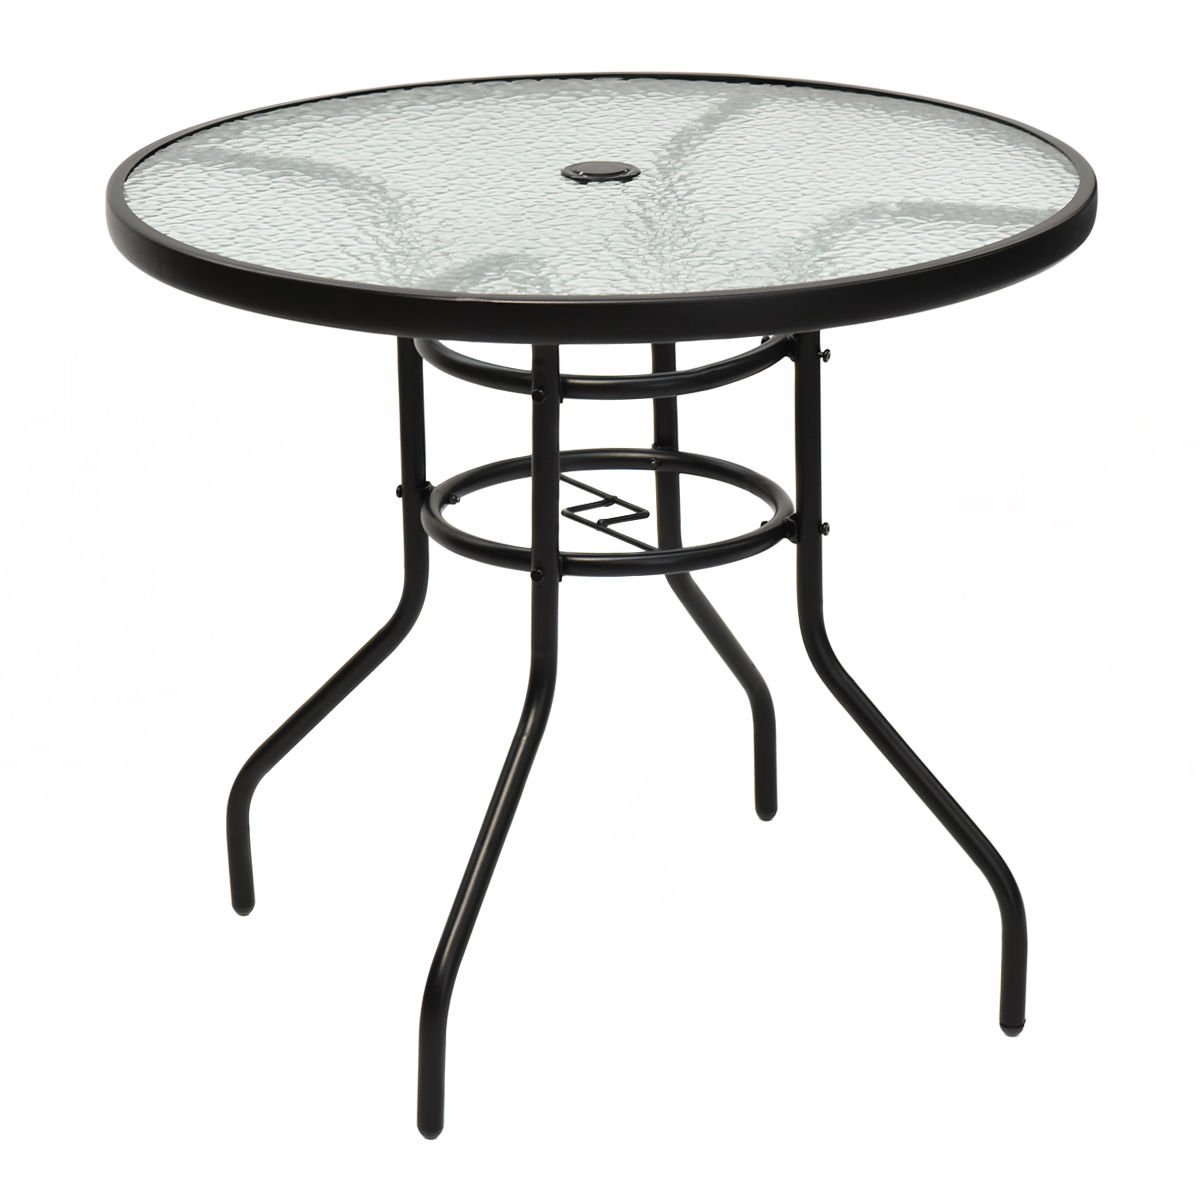 Patio Table Cheap Garden Table Steel Find Garden Table Steel Deals On Line At